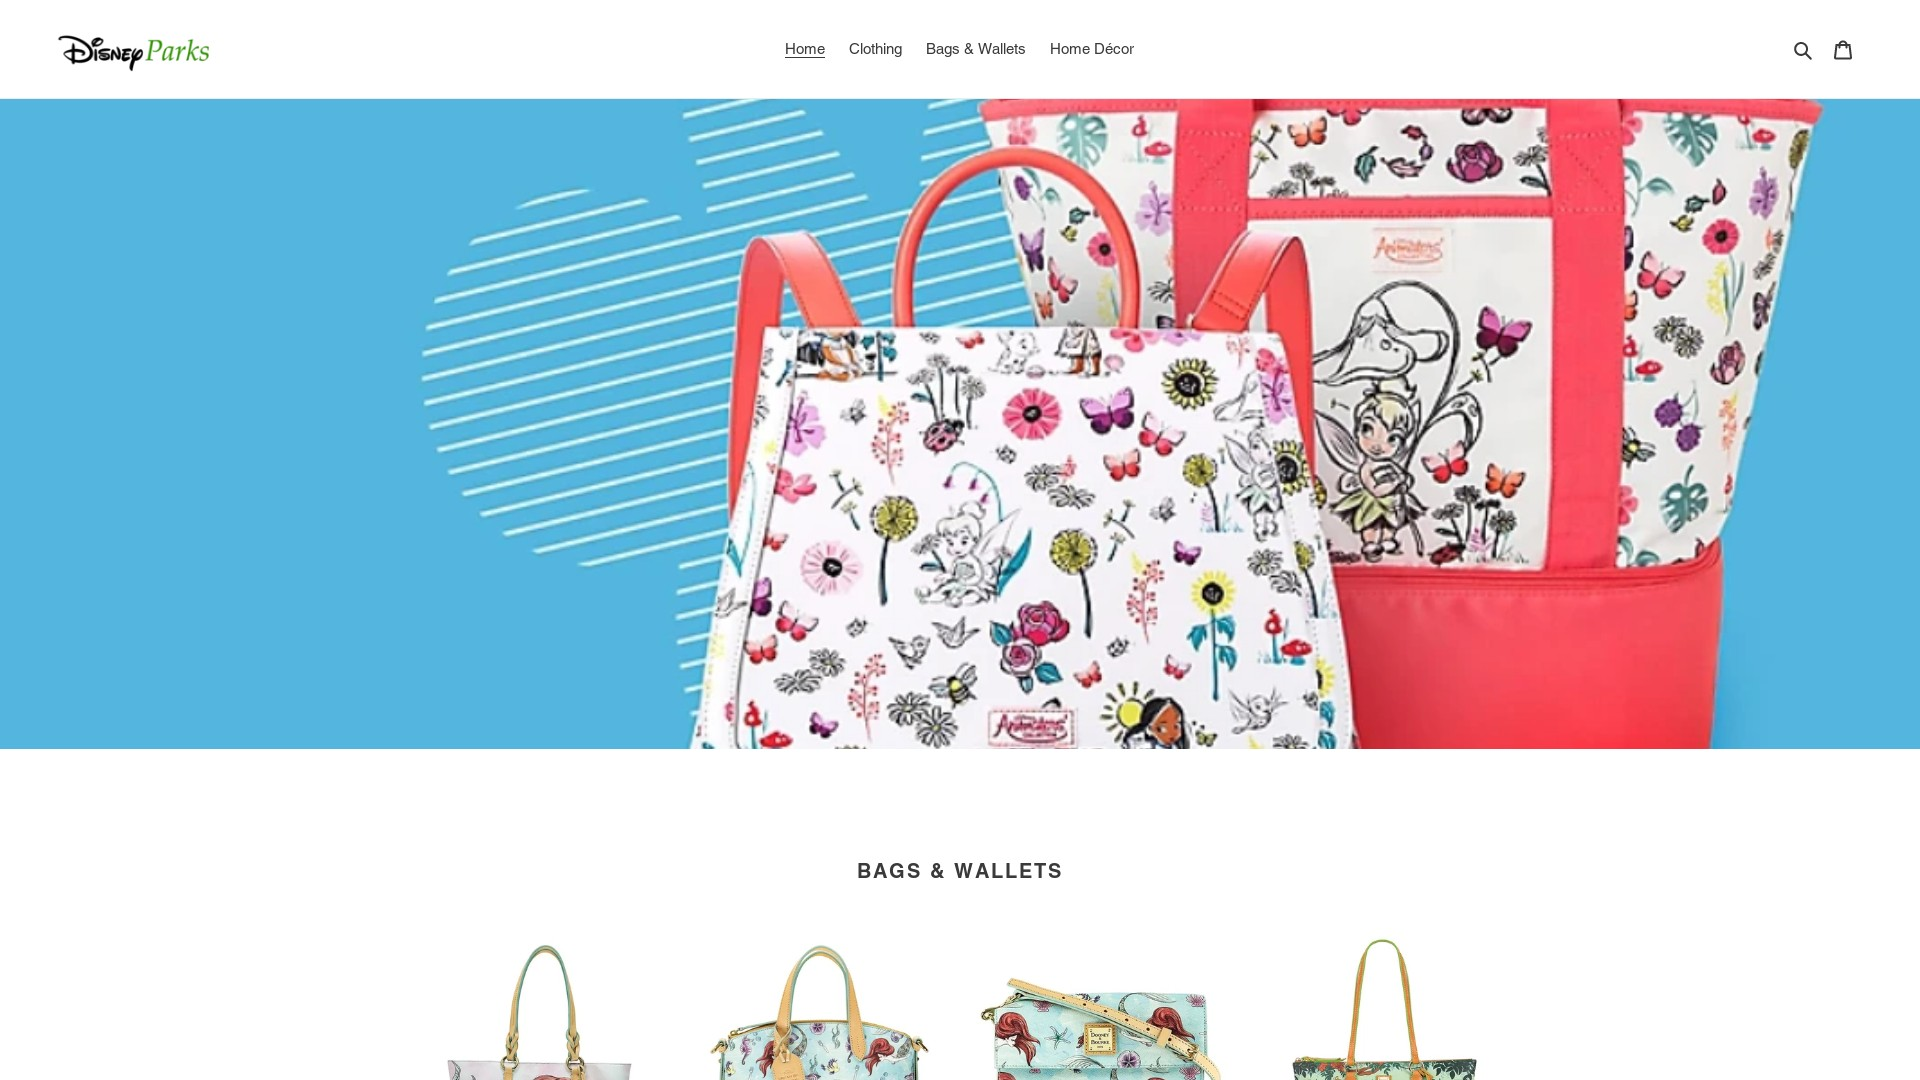 Is Parksdisney com Legit or a Scam? Review of the Online Store